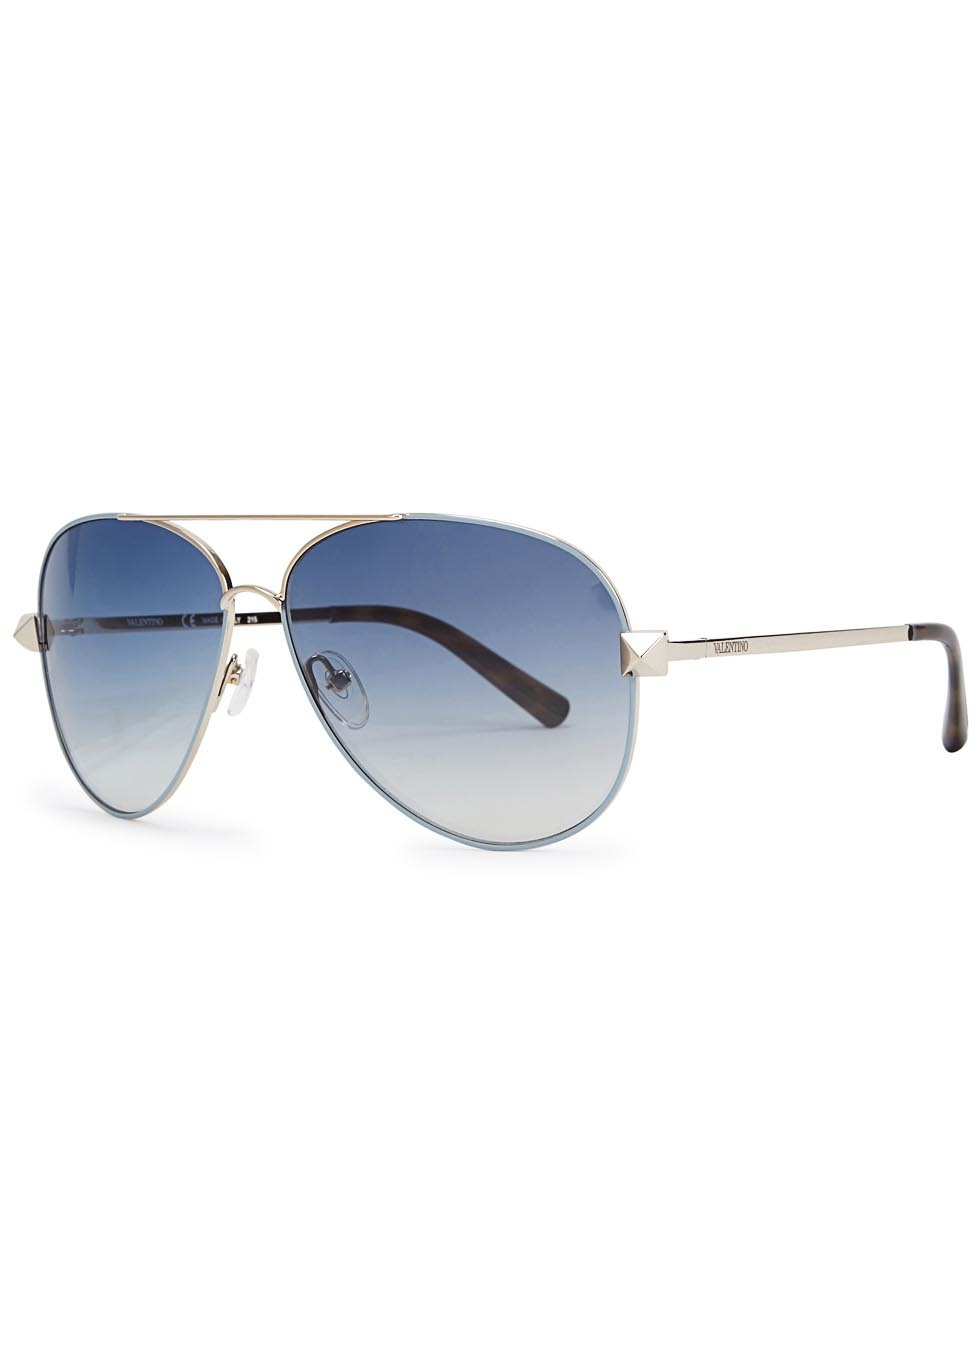 Blue Mirrored Aviator Style Sunglasses - secondary colour: pale blue; predominant colour: silver; occasions: casual, holiday; style: aviator; size: large; material: chain/metal; pattern: plain; finish: metallic; season: a/w 2015; wardrobe: basic